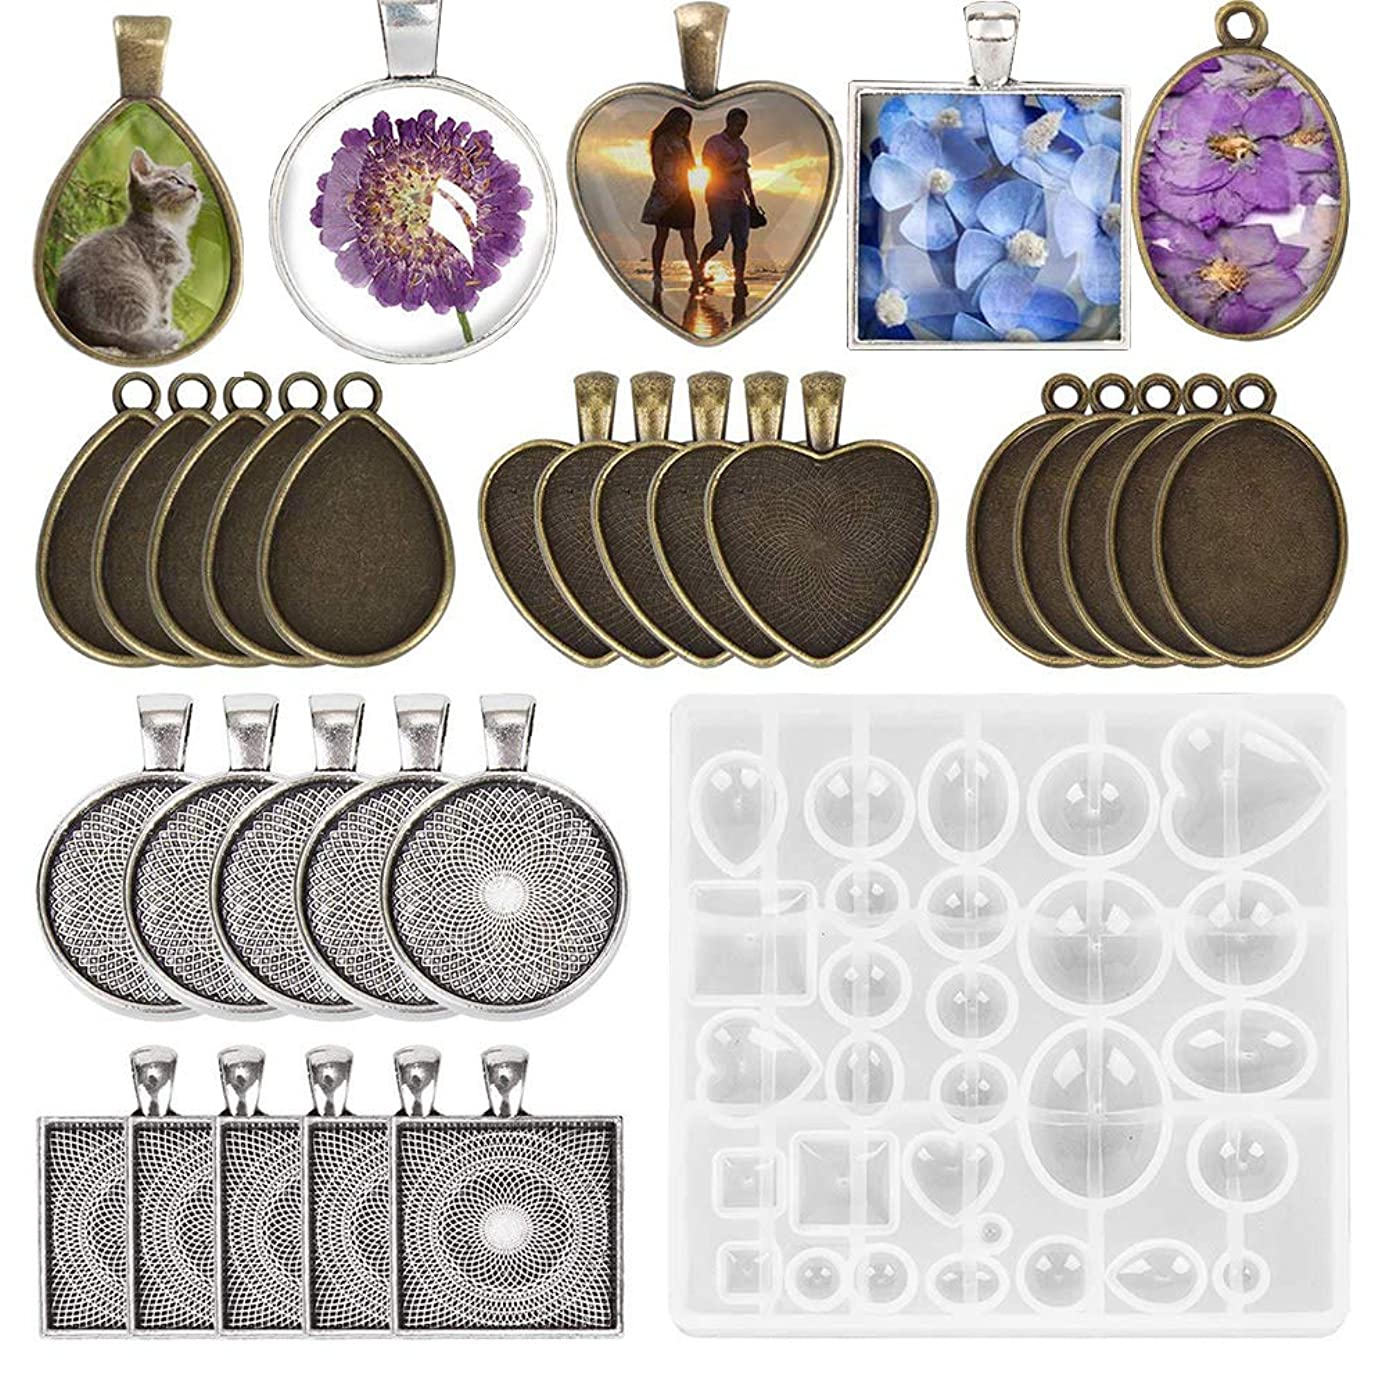 Velidy 5 Styles Pendant Trays Set+1pcs Silicone Resin Jewelry Mold 31pcs Round Square Heart Teardrop and Oval Jewelry Bezel Vintage Bronze Pendant Base for Jewelry Making (31pcs Resin Casting Molds) ozb5665245